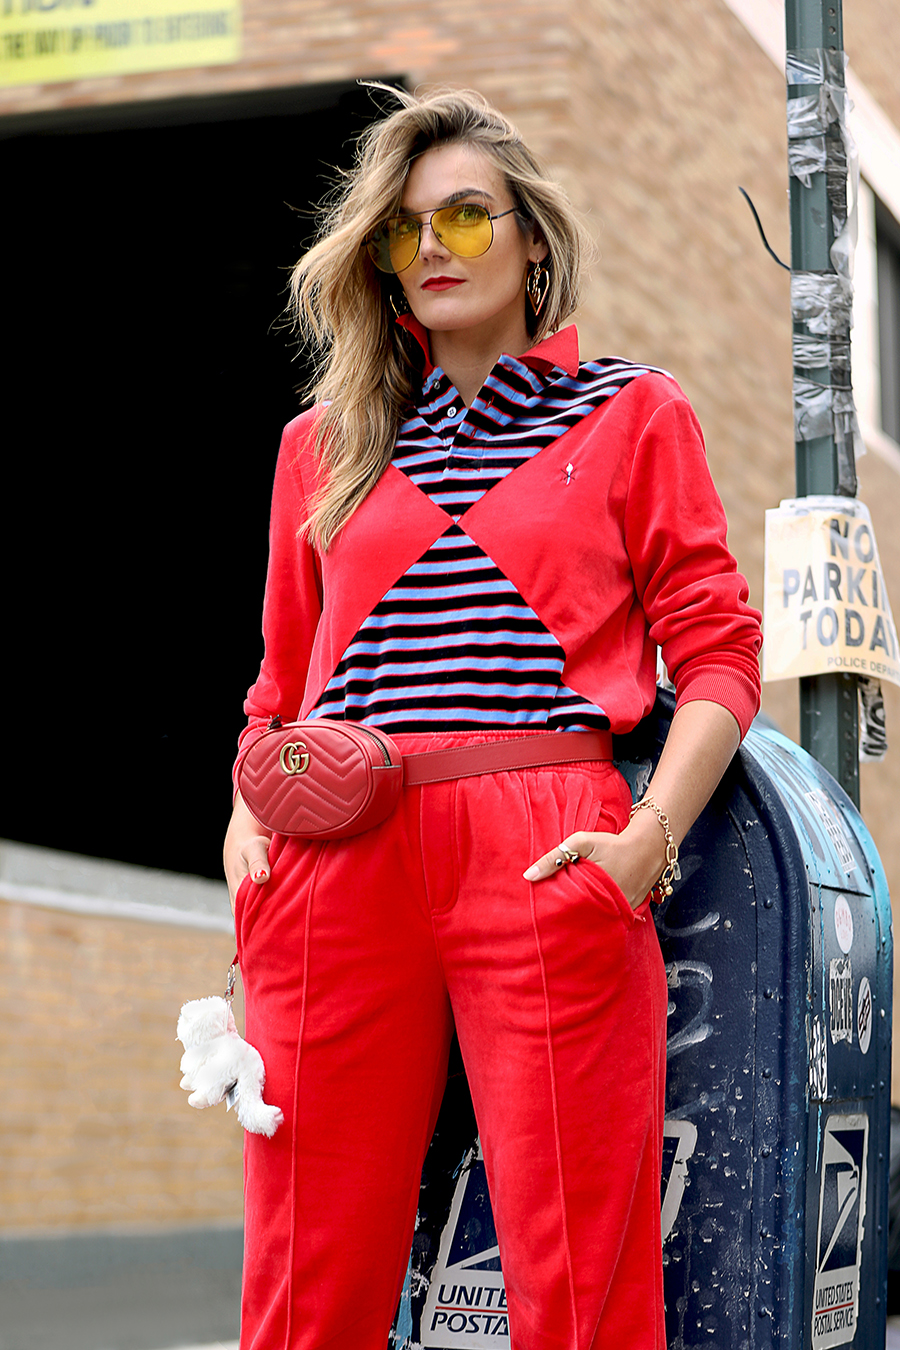 Cory_Fader_street_fashion_photography_NYC_Tony_Ward_Studio_red_outfit